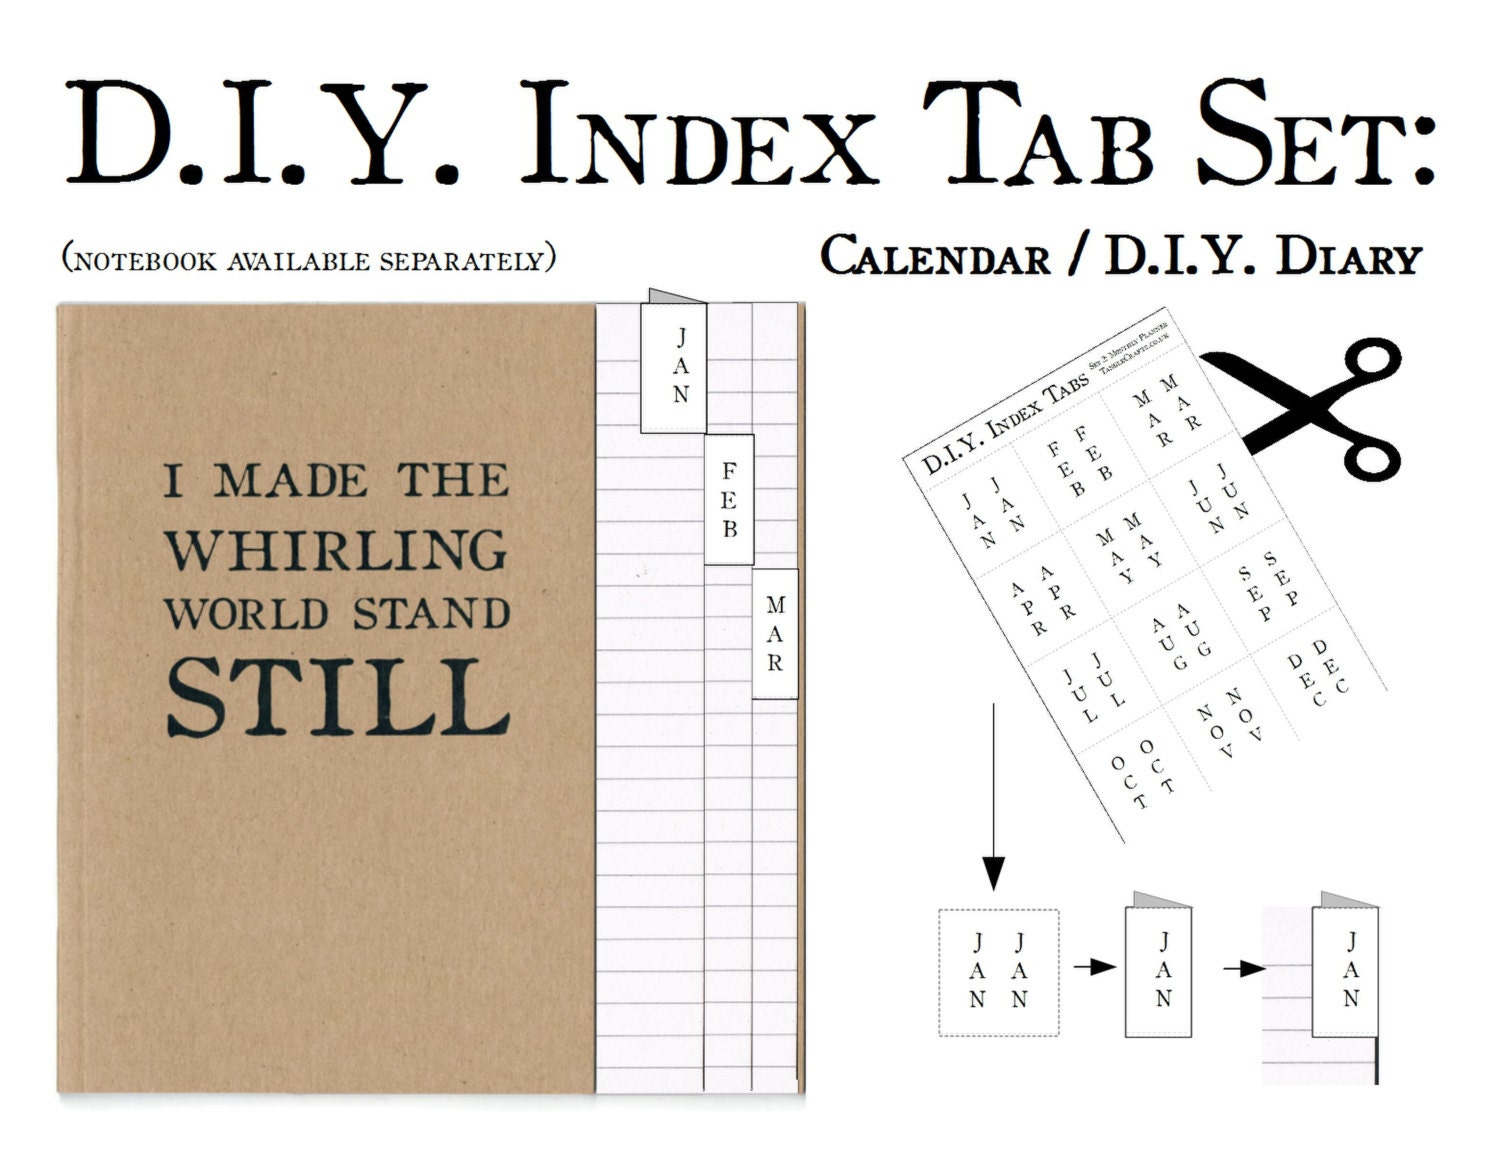 Diy Notebook Calendar : Diy calendar month index tab label set bullet journal